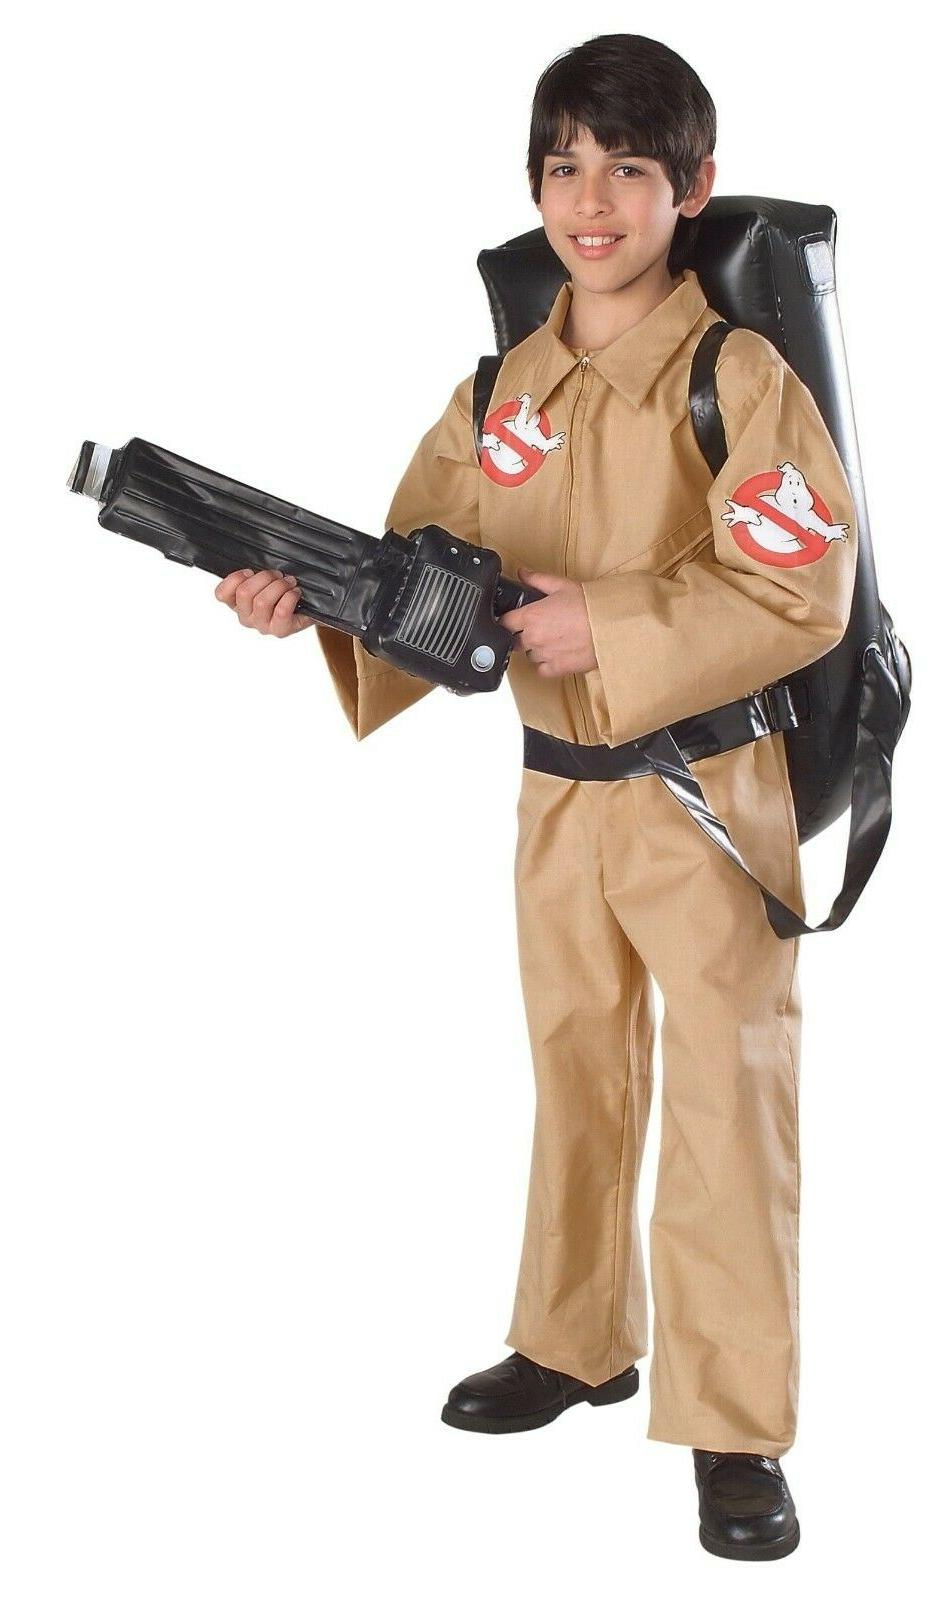 Ghostbusters Deluxe Girls Ghost Busters